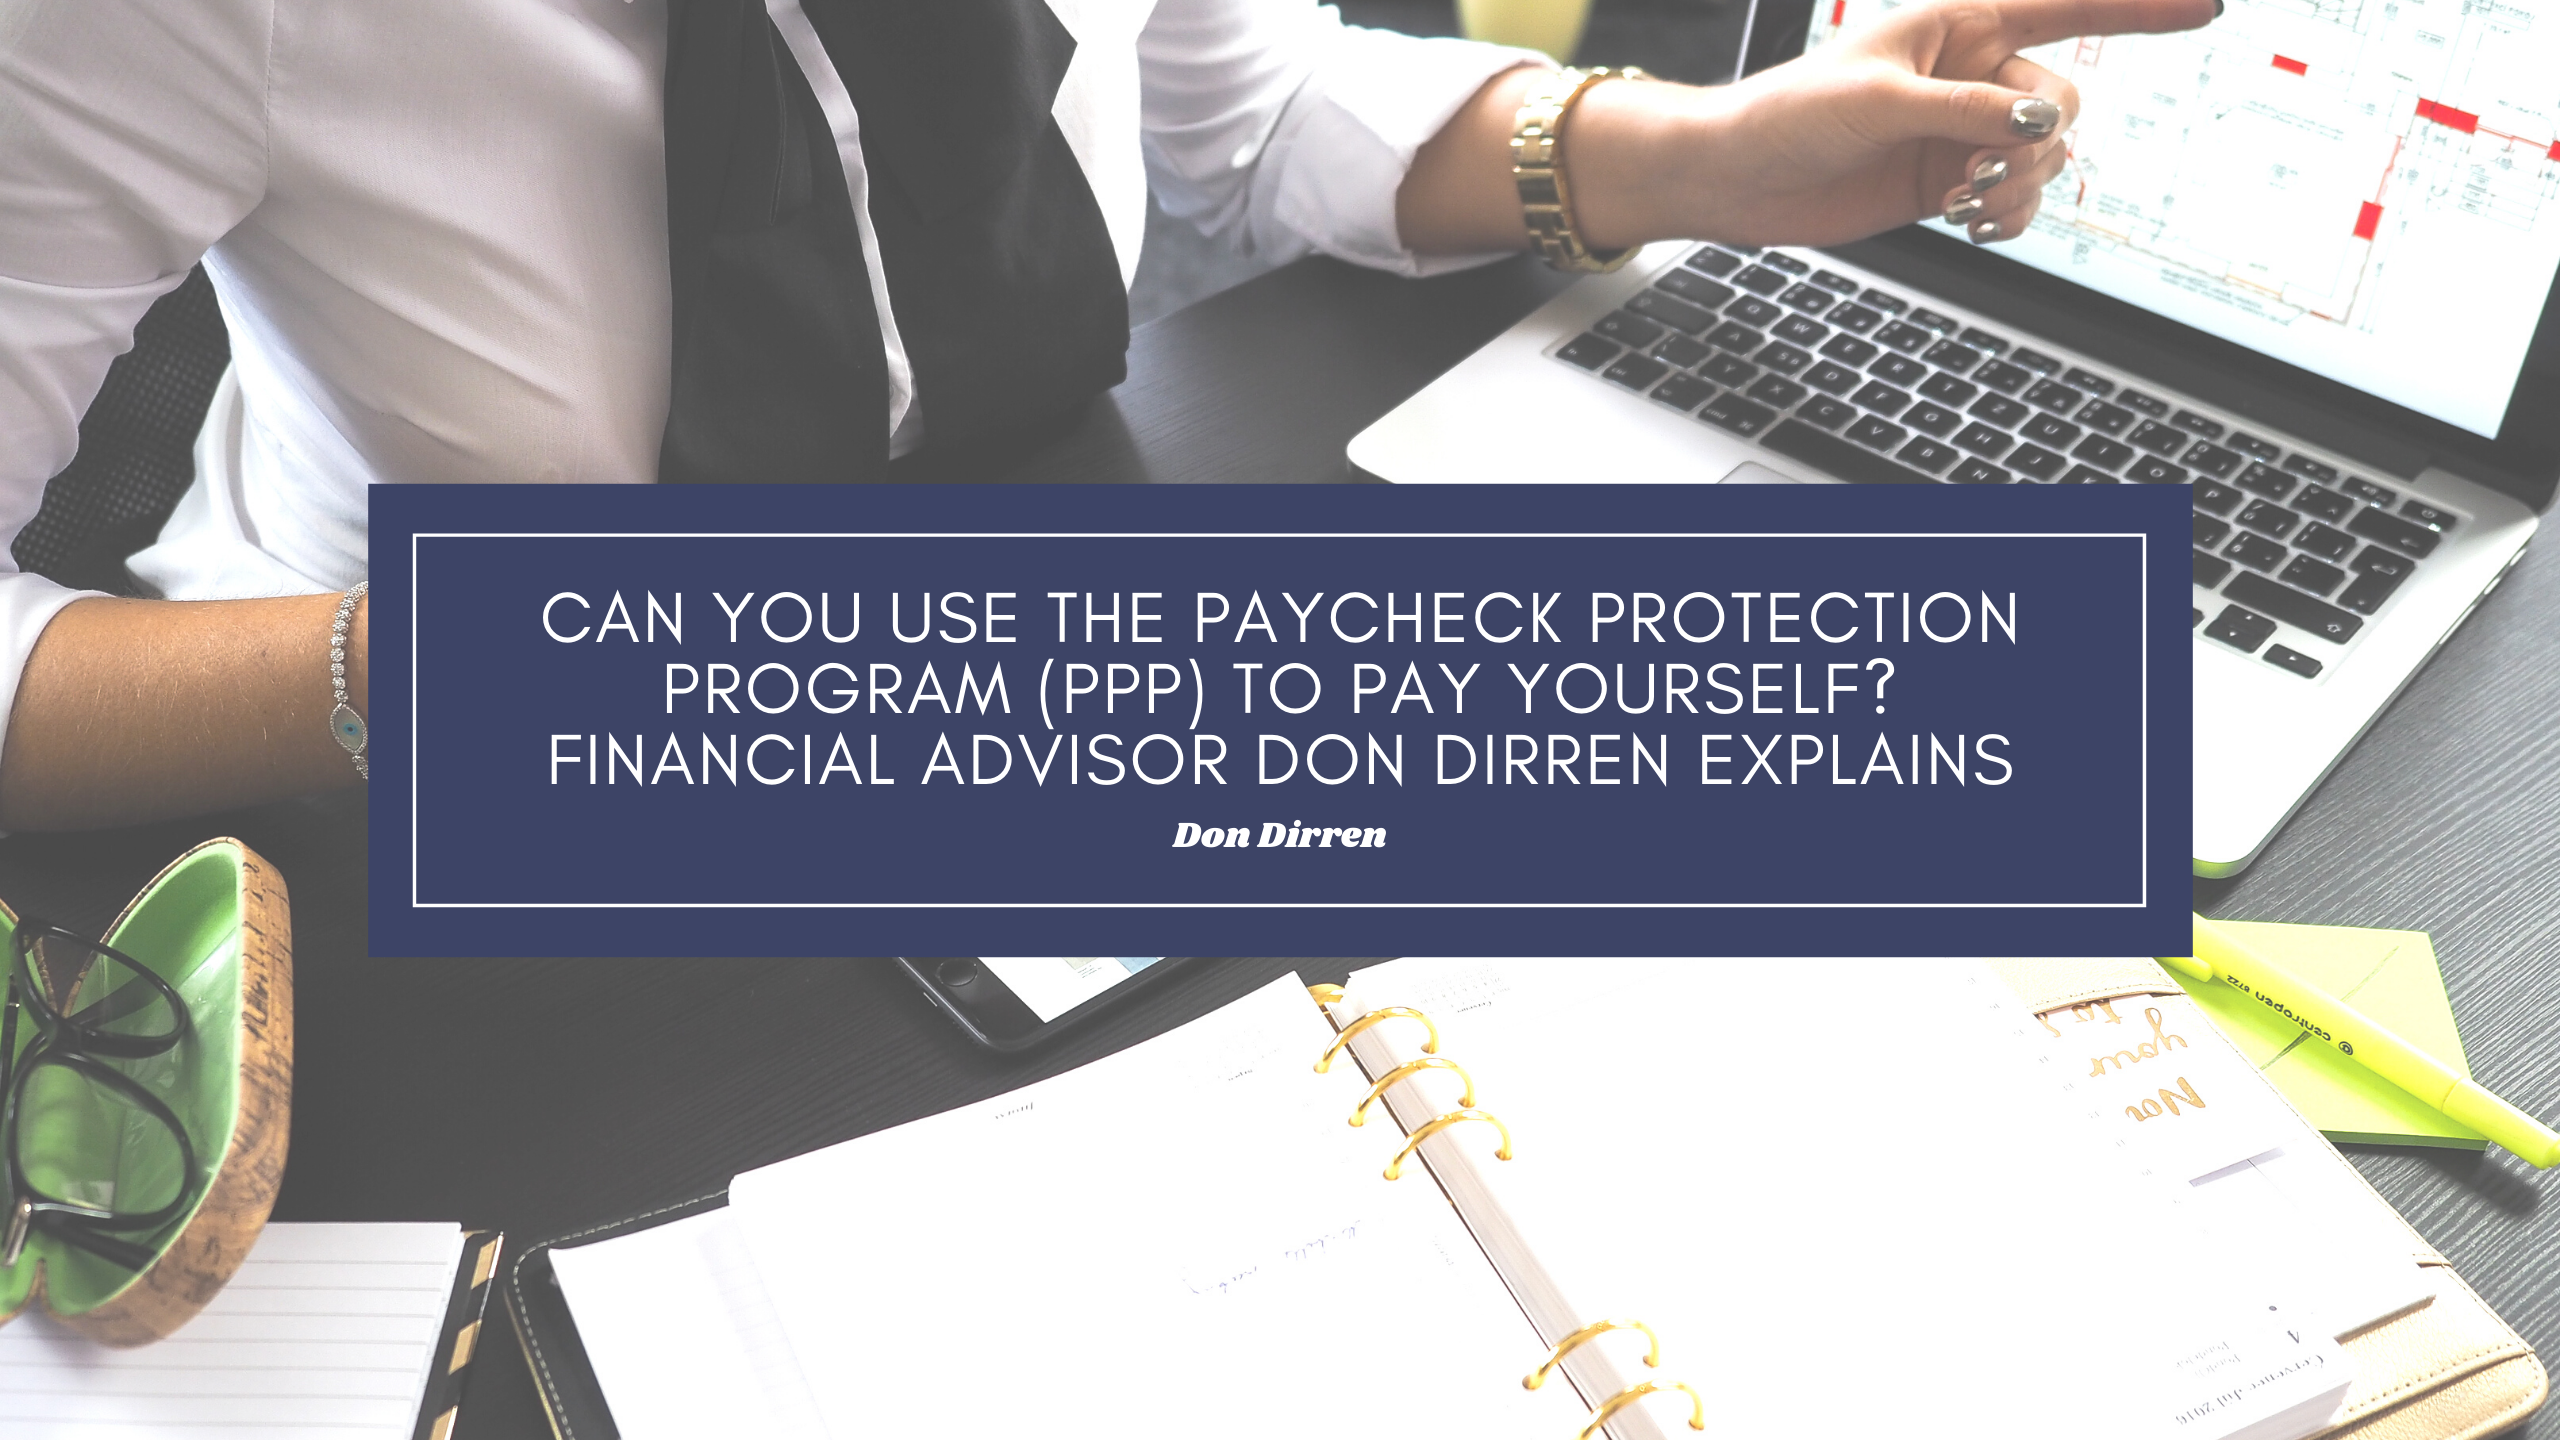 Can You Use The Paycheck Protection Program (PPP) To Pay Yourself? Financial Advisor Don Dirren Explains